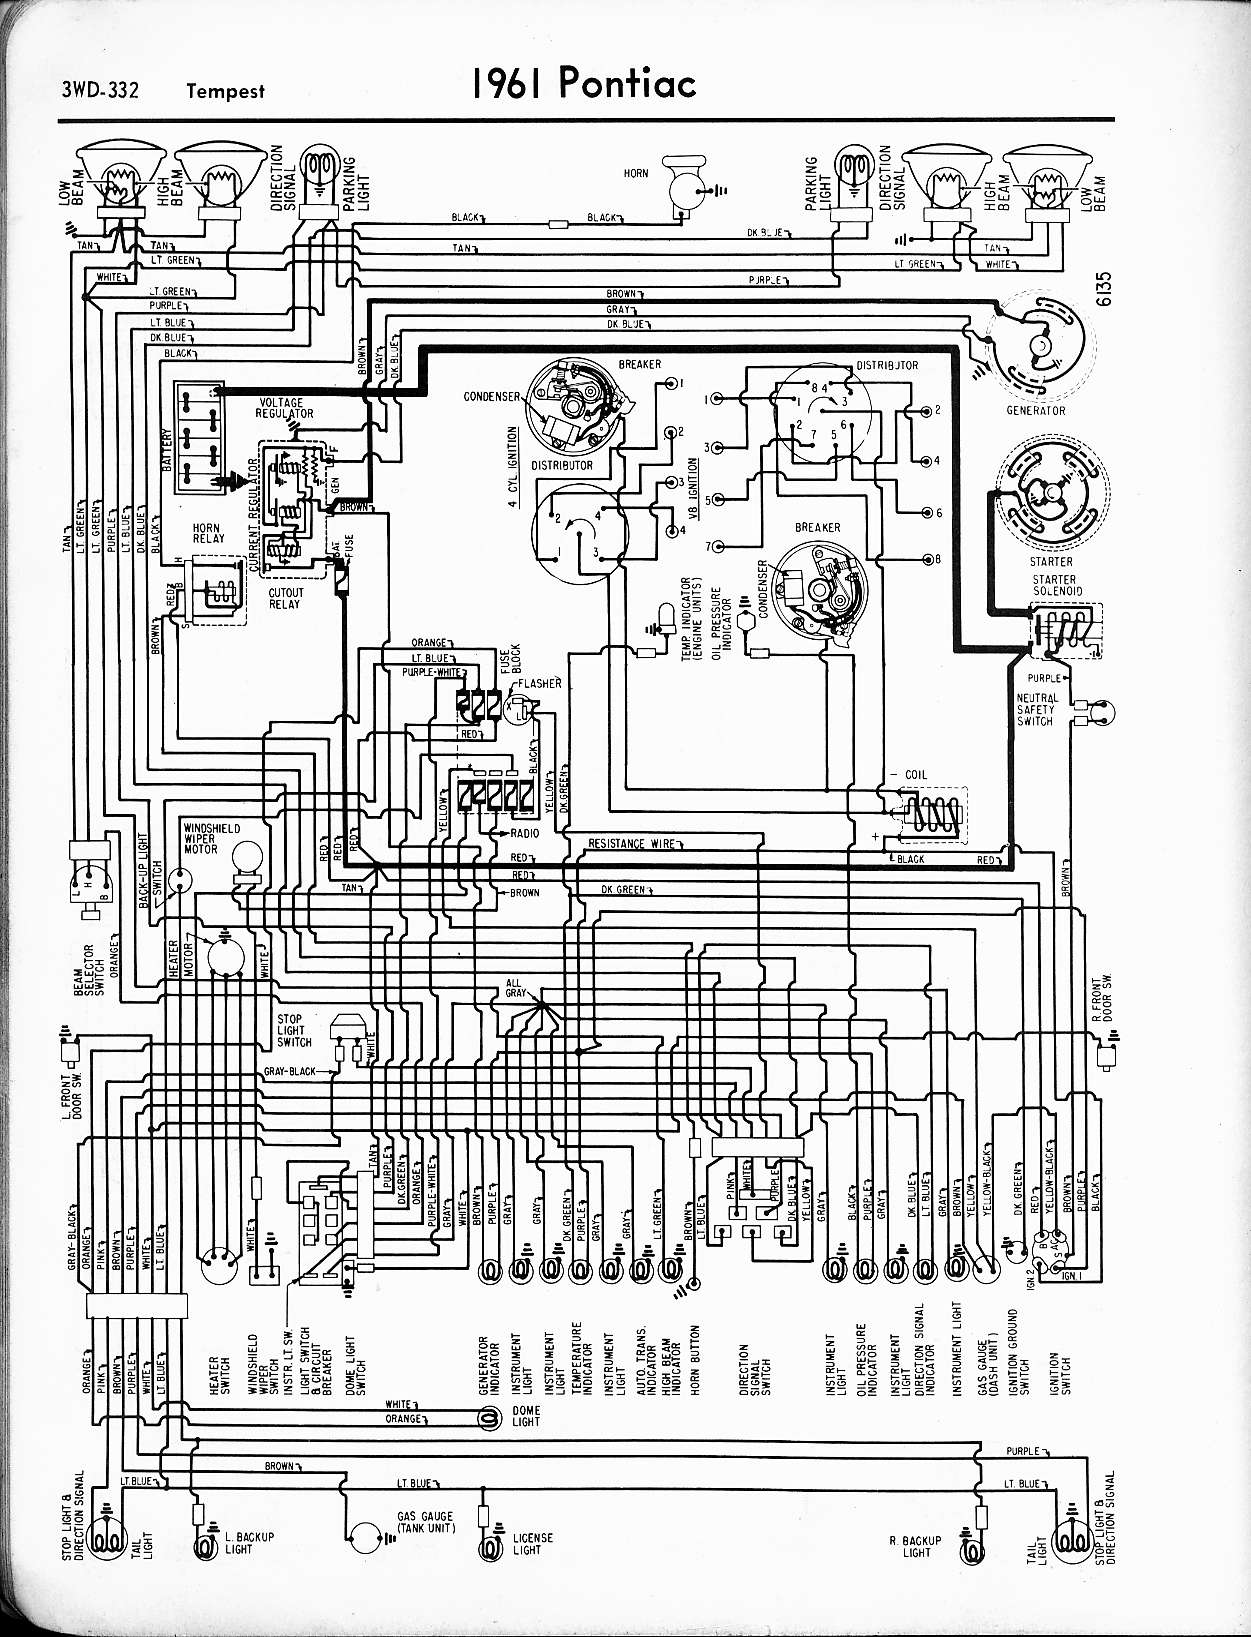 wallace racing wiring diagrams 1997 Pontiac Grand Prix Engine Diagram 69 pontiac grand prix wiring diagram  #8 Pontiac Grand Prix Engine Diagram